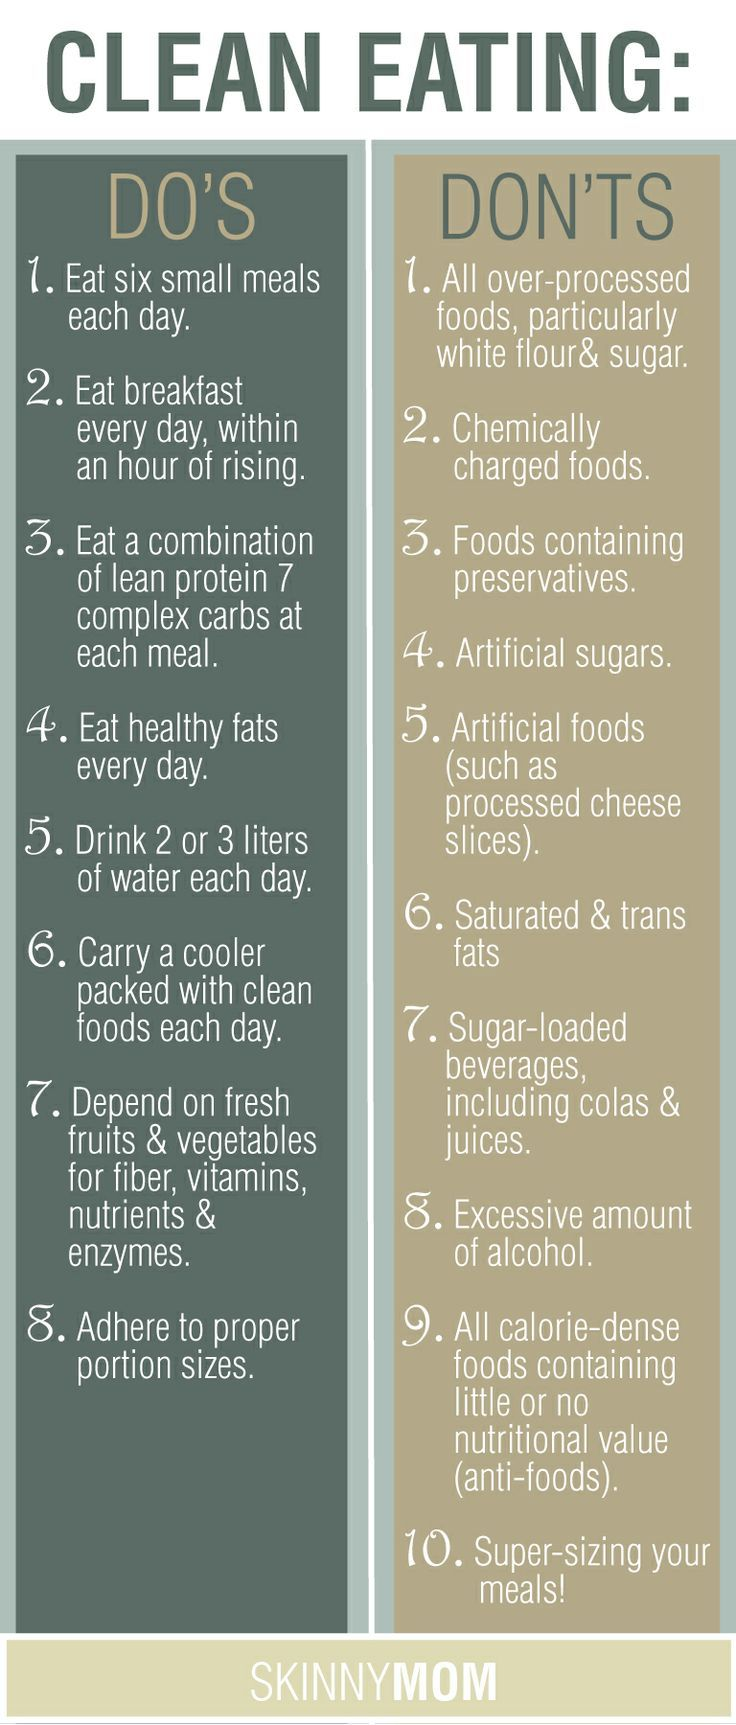 Clean eating broken down to the core. its so easy if you pay attention to what you're eating.